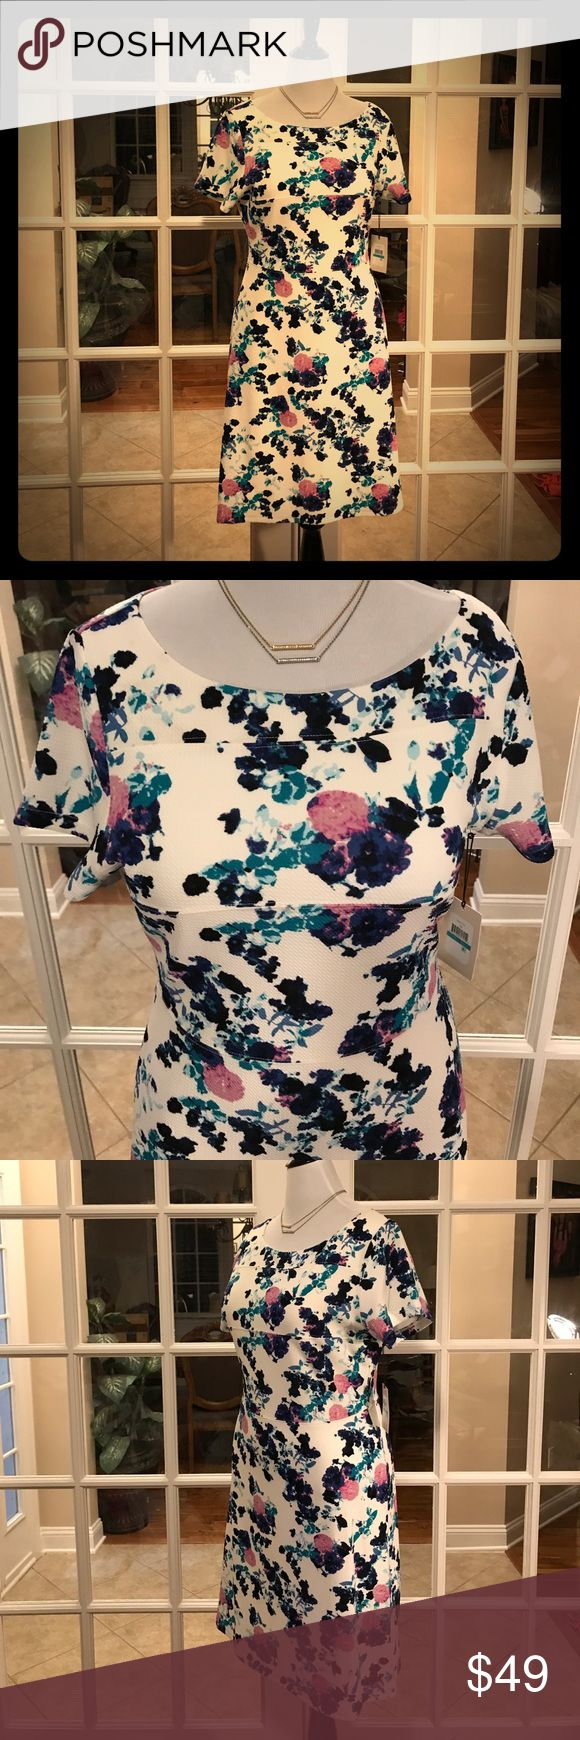 🆕 Ivanka Trump Spring/Summer Midi Dress This Ivanka Trump Spring/Summer Midi Dress is so pretty and super comfortable.  The body is fully lined and has great stretch!   Shell is 92% Polyester, 8% Spandex.  Lining is 100% Polyester.  💕 Ivanka Trump Dresses Midi